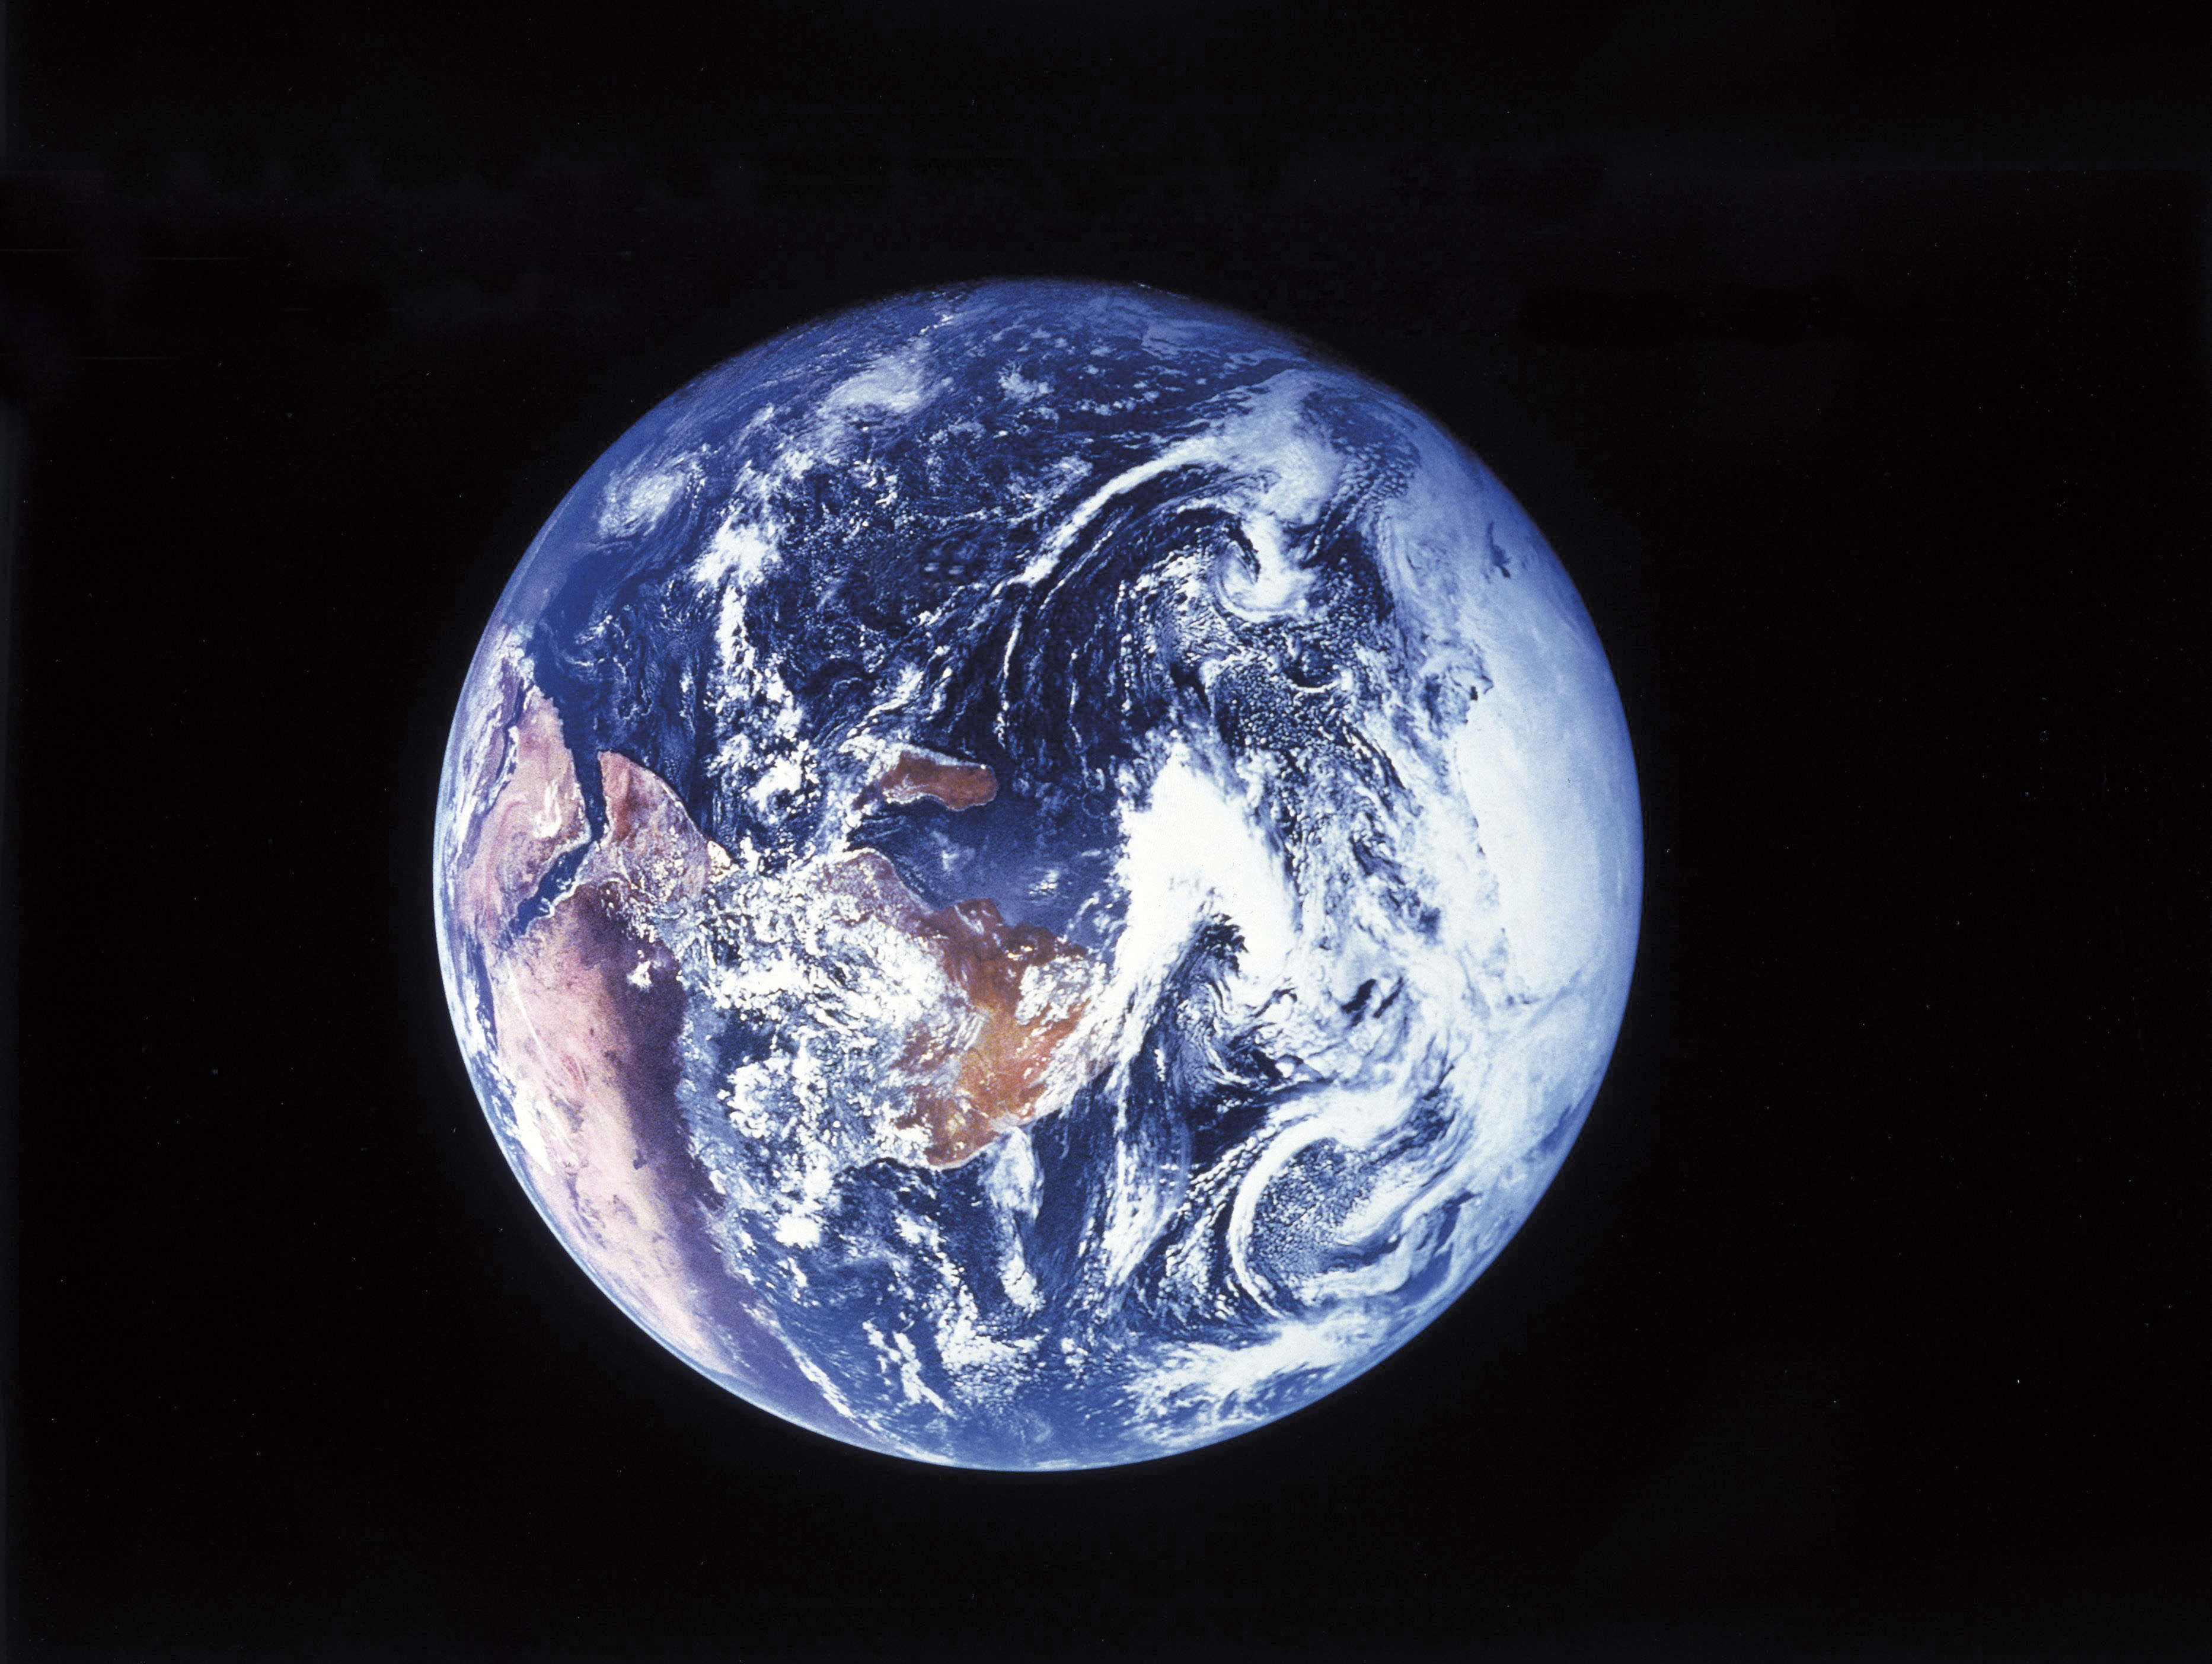 The planet earth as seen from space.